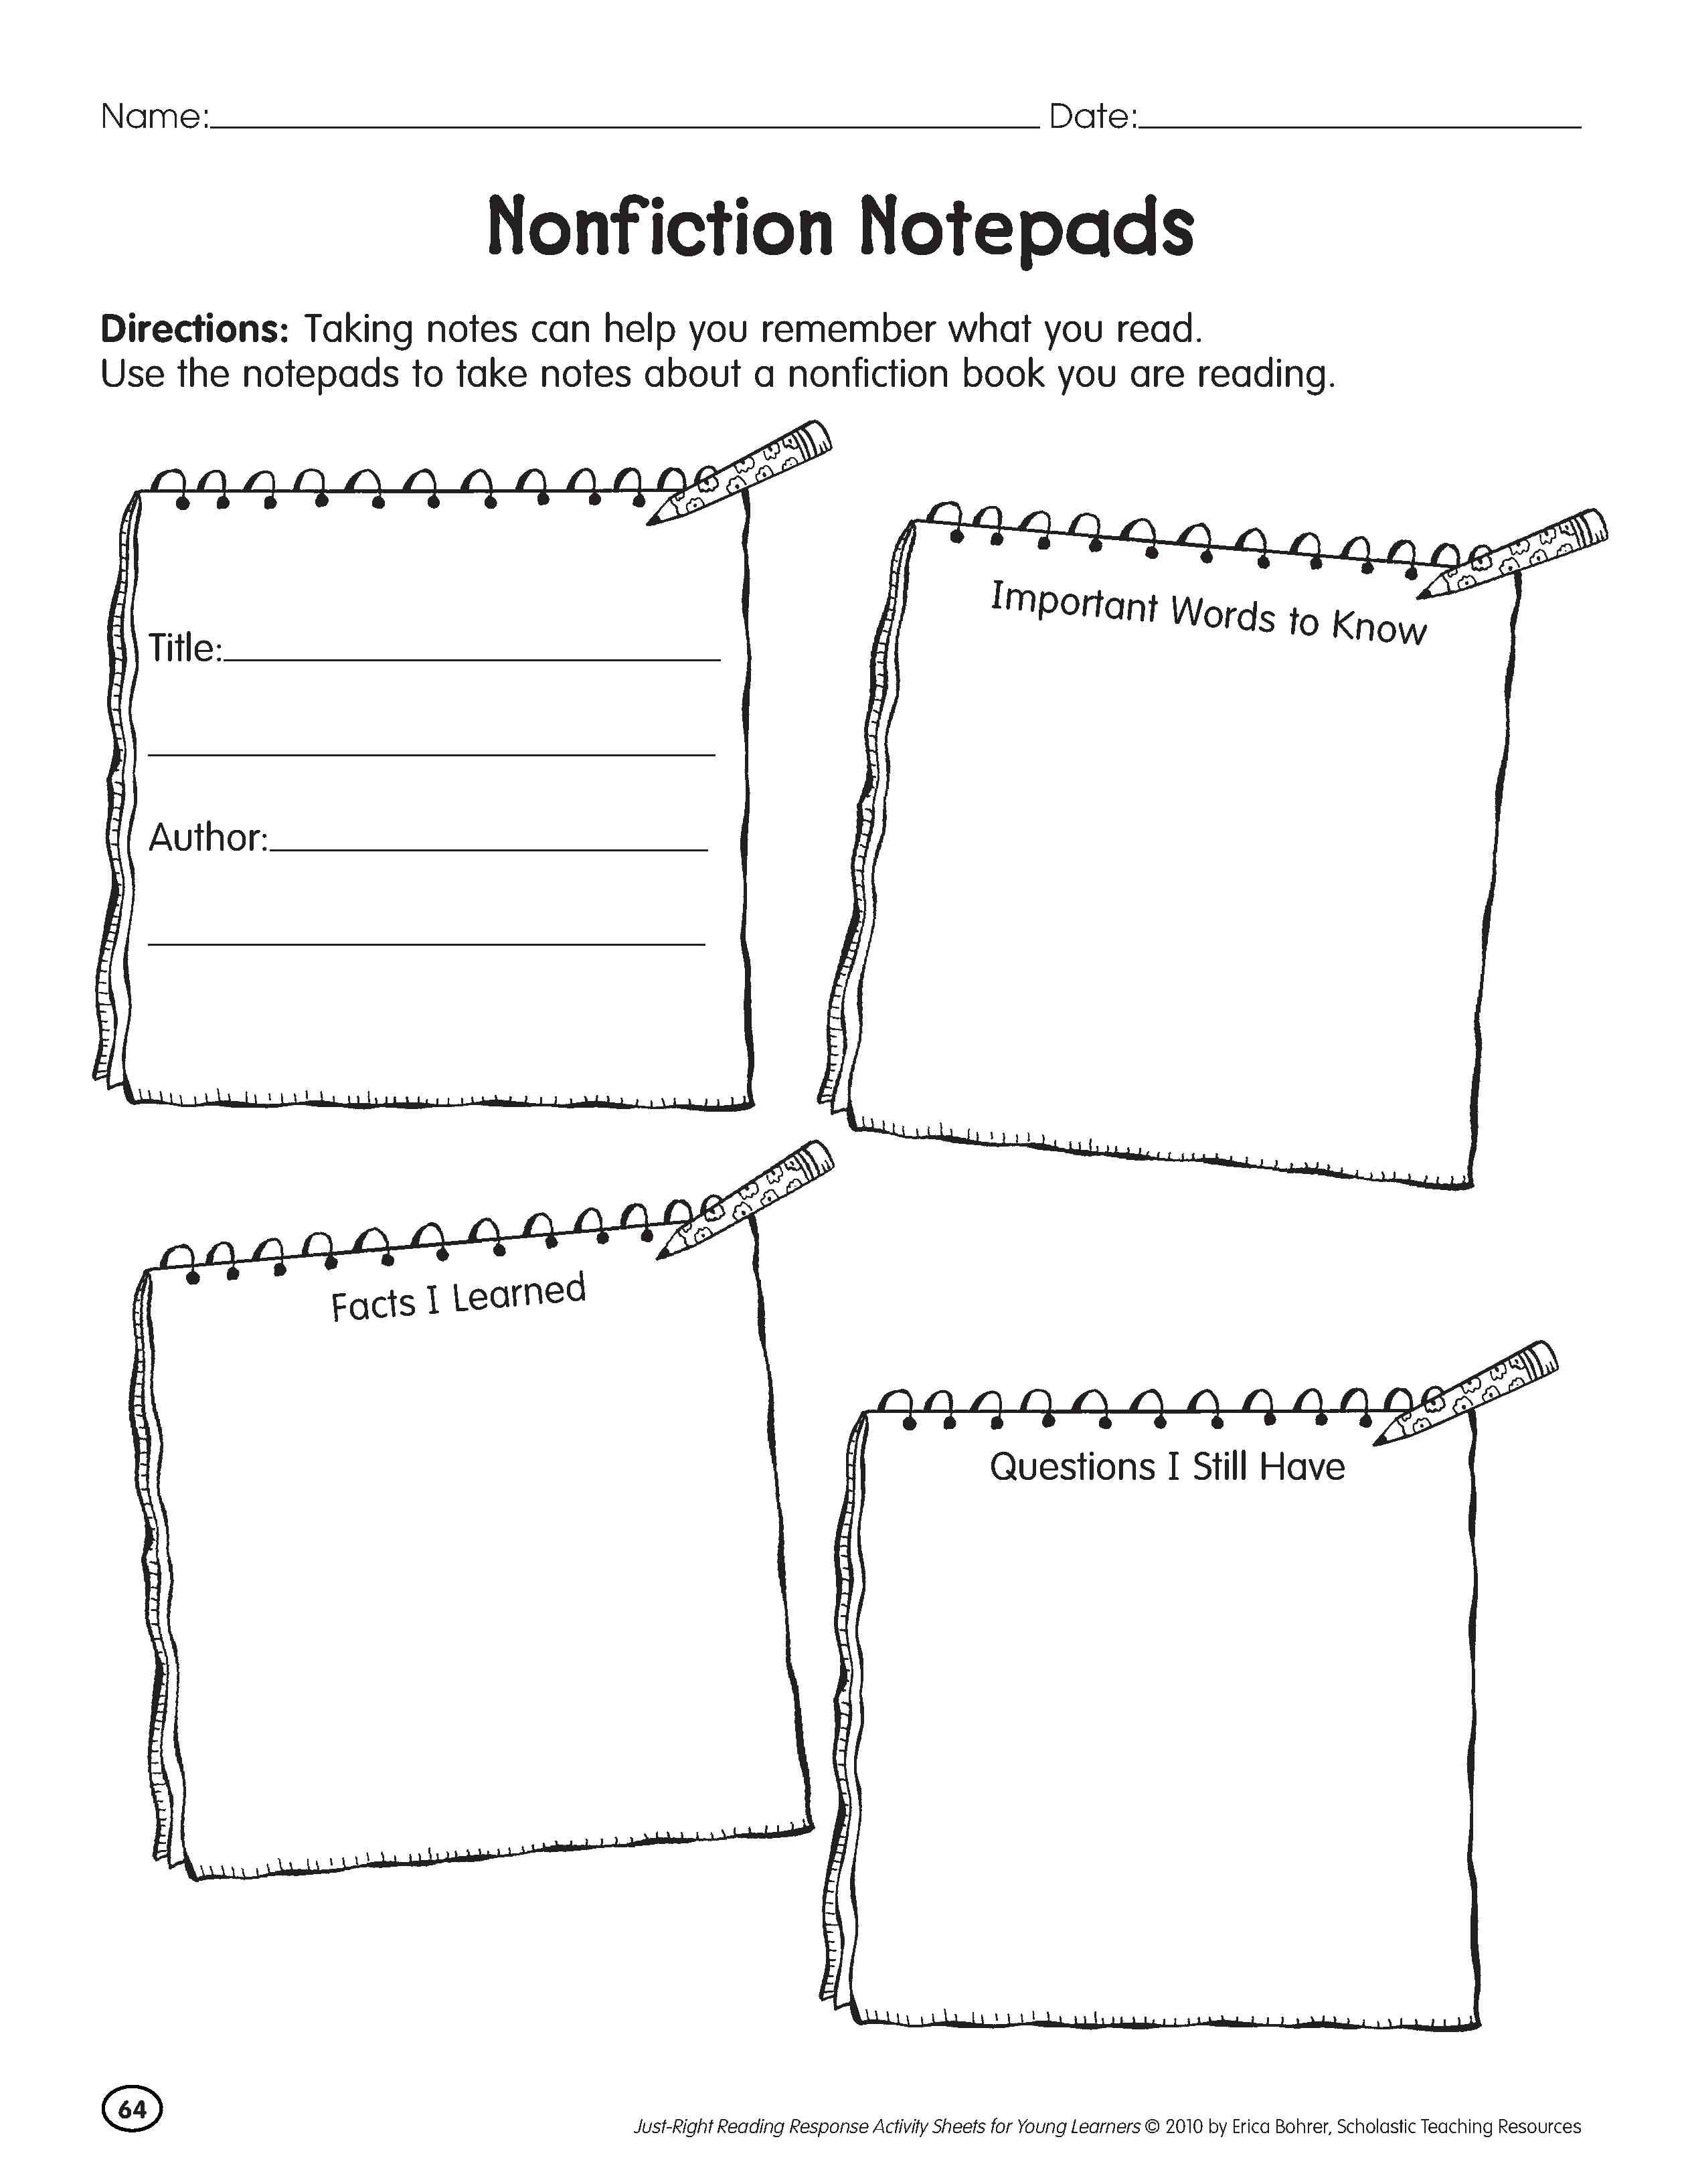 worksheet Nonfiction Reading Comprehension Worksheets investigating nonfiction notepad teaching social notepad